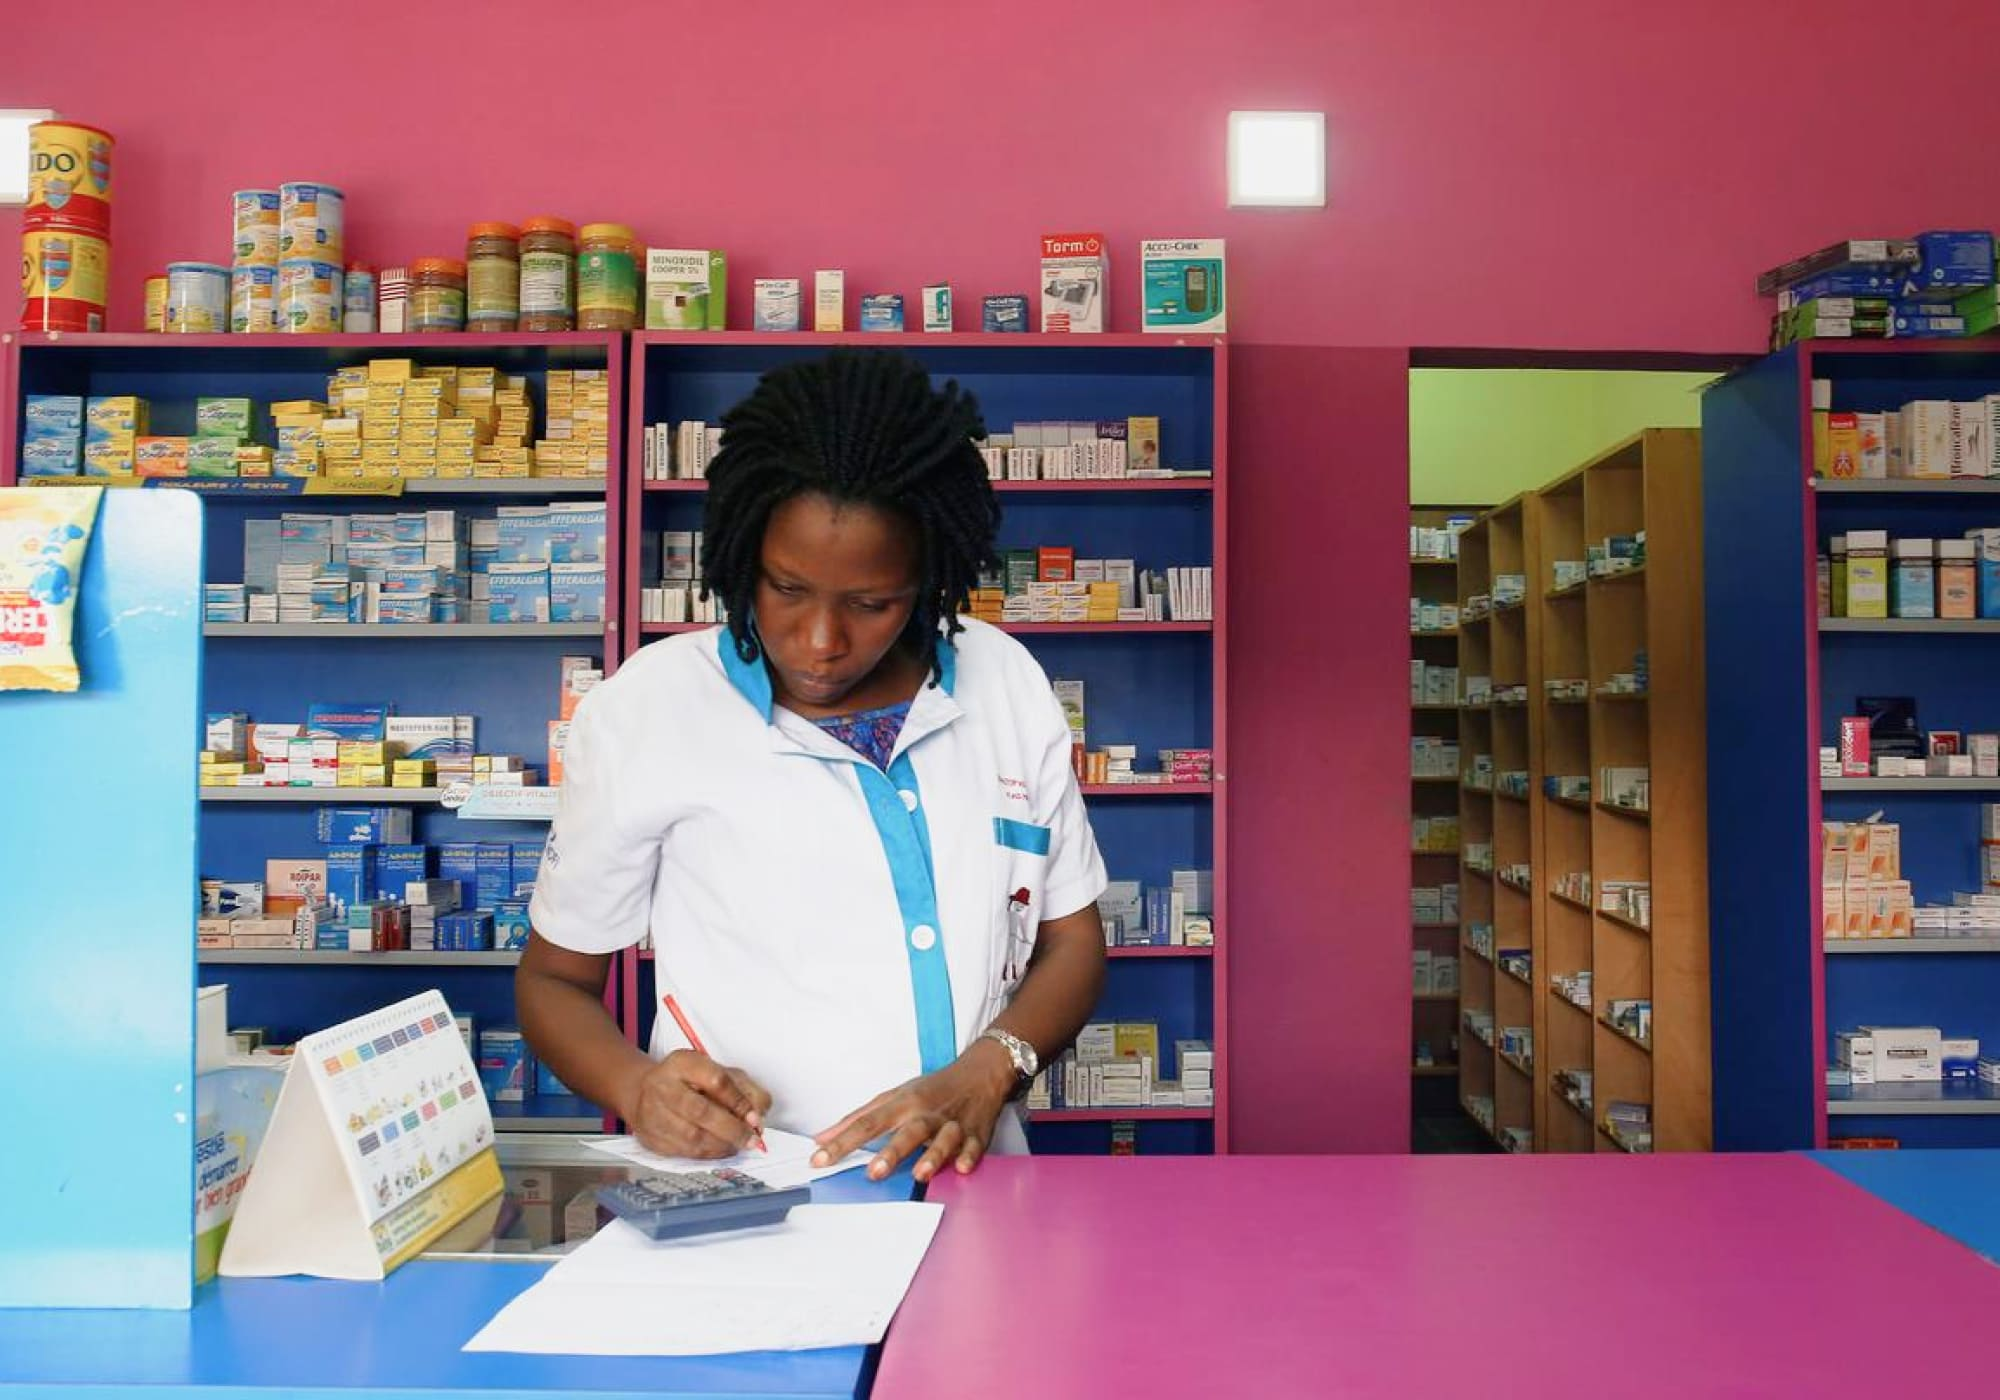 Enable training as a pharmacist